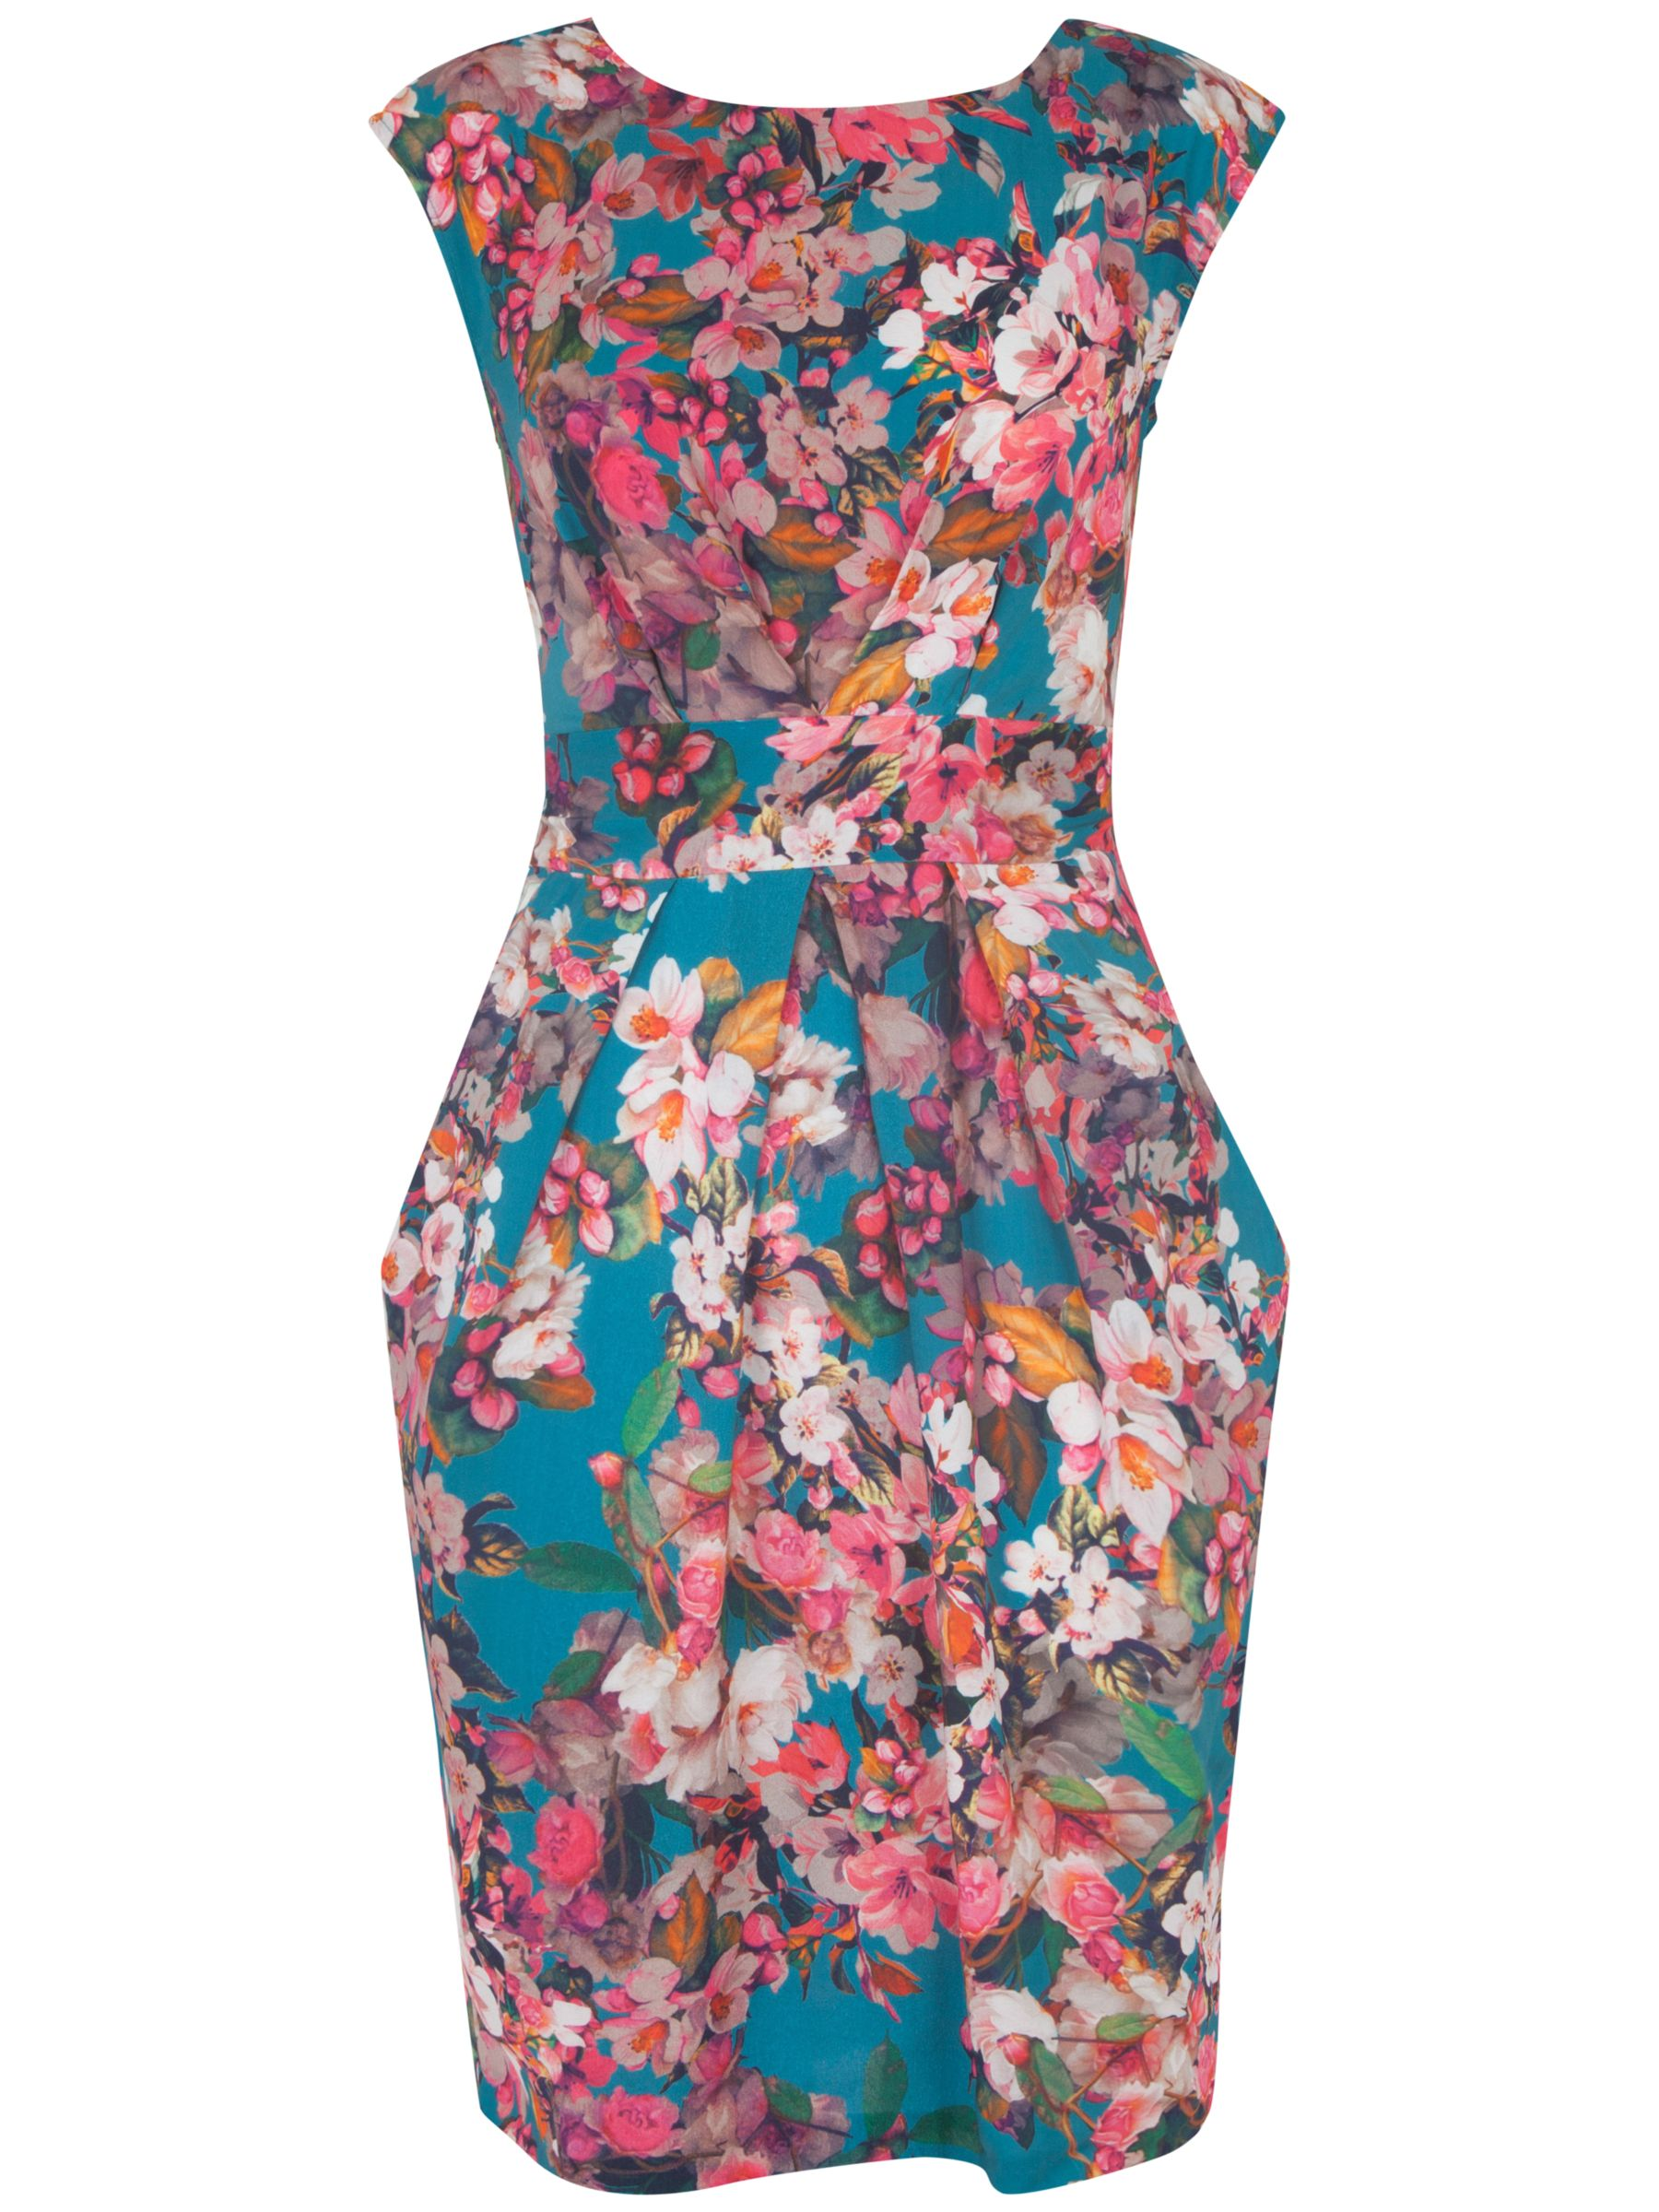 almari floral print v tie back dress multi, almari, floral, print, tie, back, dress, multi, 16|14, clearance, womenswear offers, womens dresses offers, women, inactive womenswear, new reductions, womens dresses, special offers, 1763288